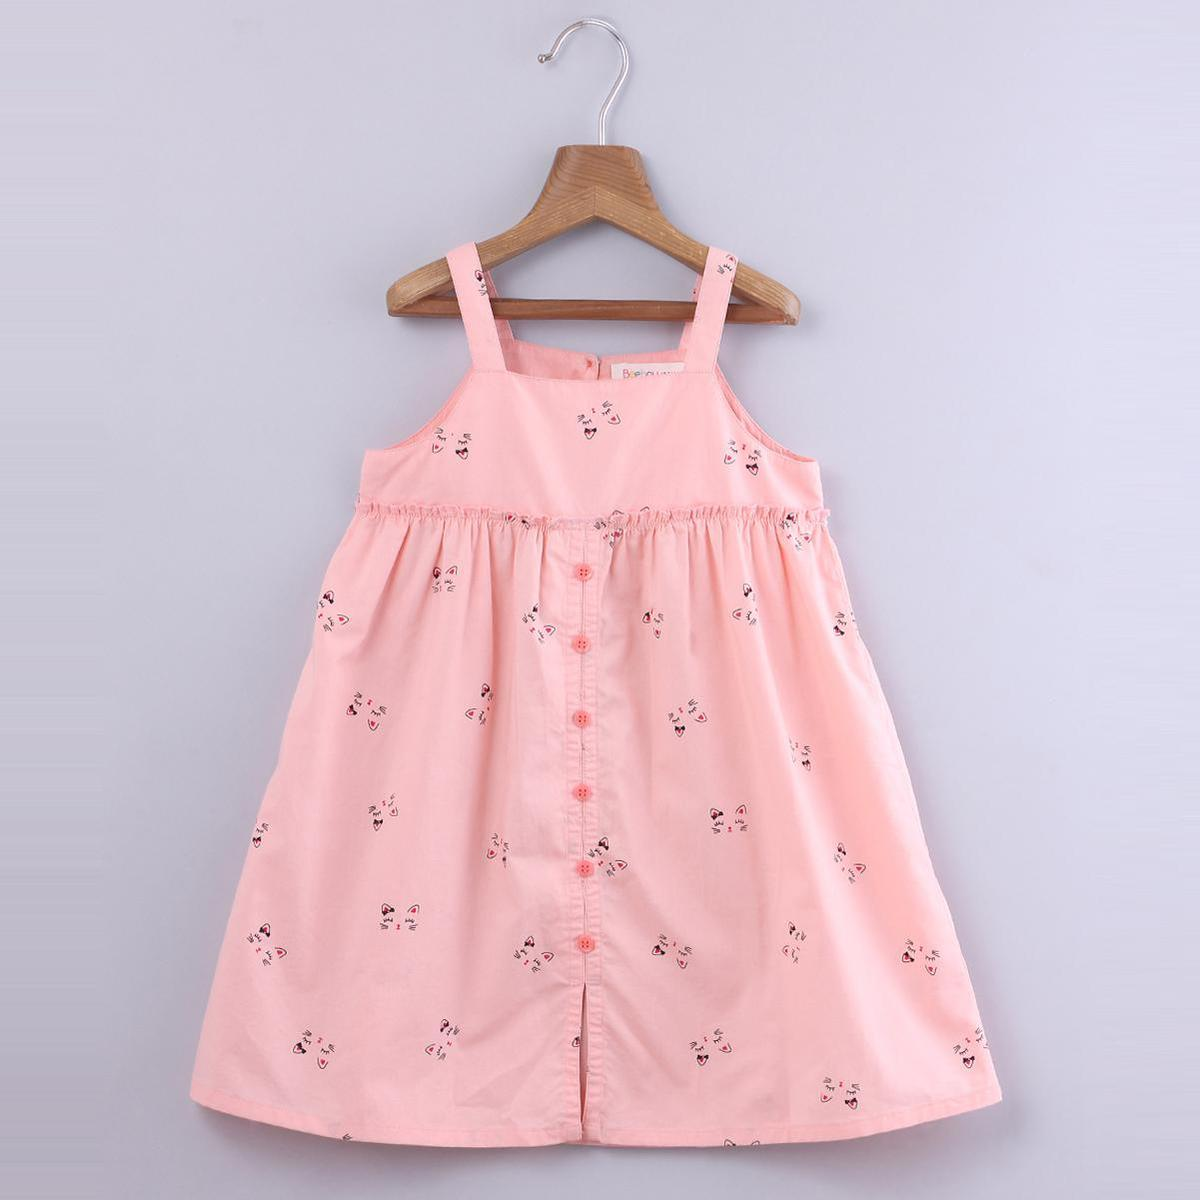 Beebay - Pink Colored Cat Features Printed Cotton Dress For Girls